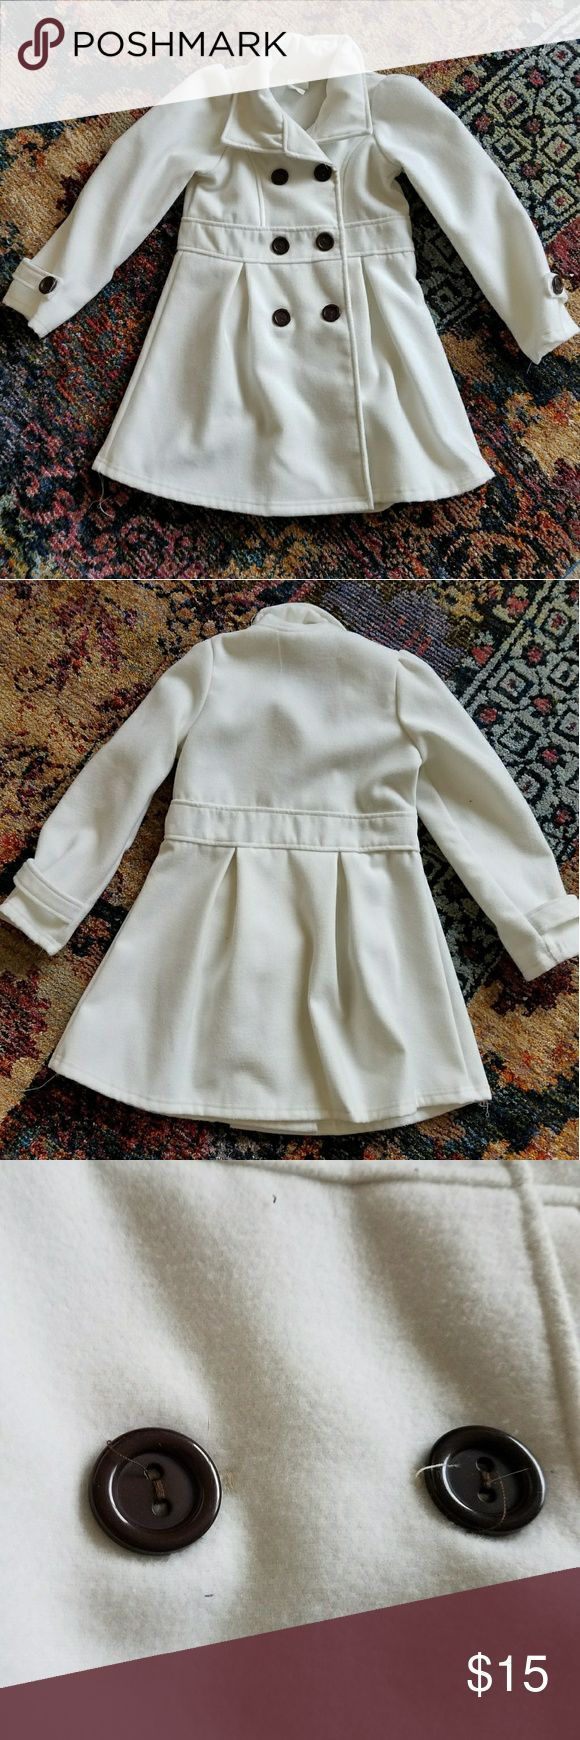 Girl's petticoat Adorable girls peacoat. Size 8, white with brown buttons. Only worn and washed once. Jackets & Coats Pea Coats